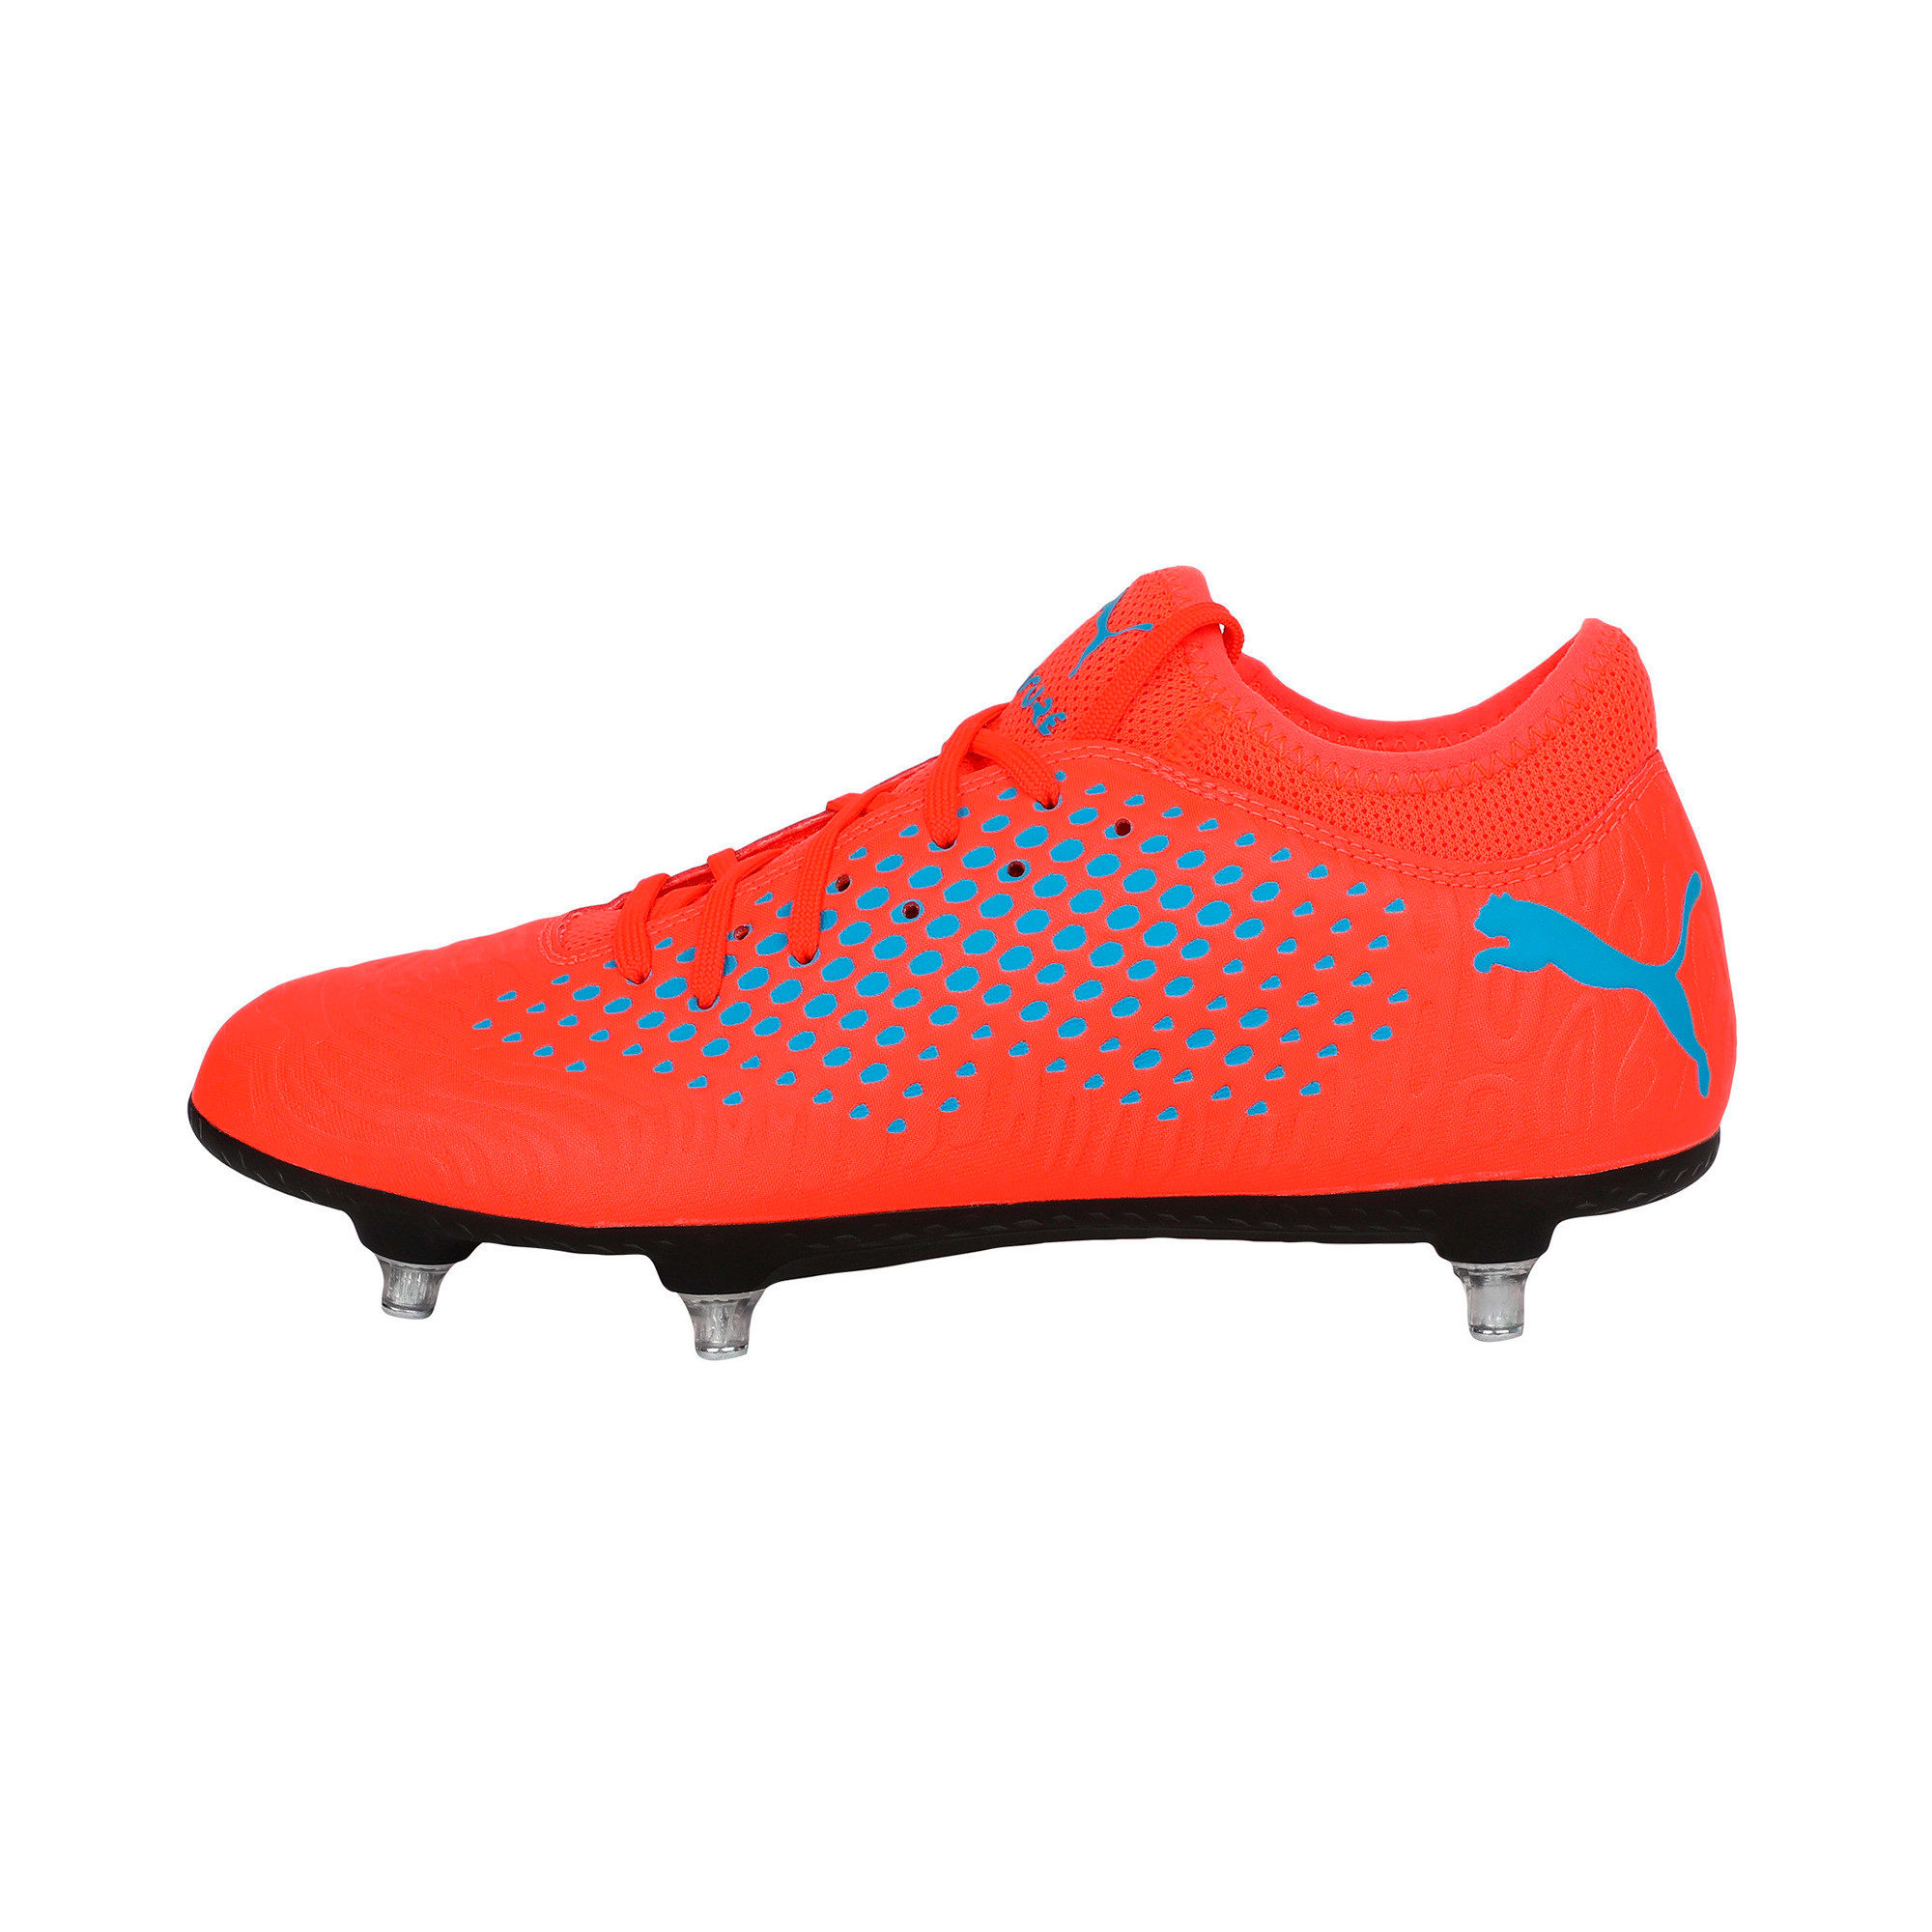 Thumbnail 1 of FUTURE 19.4 SG Men's Football Boots, Red Blast-Bleu Azur, medium-IND